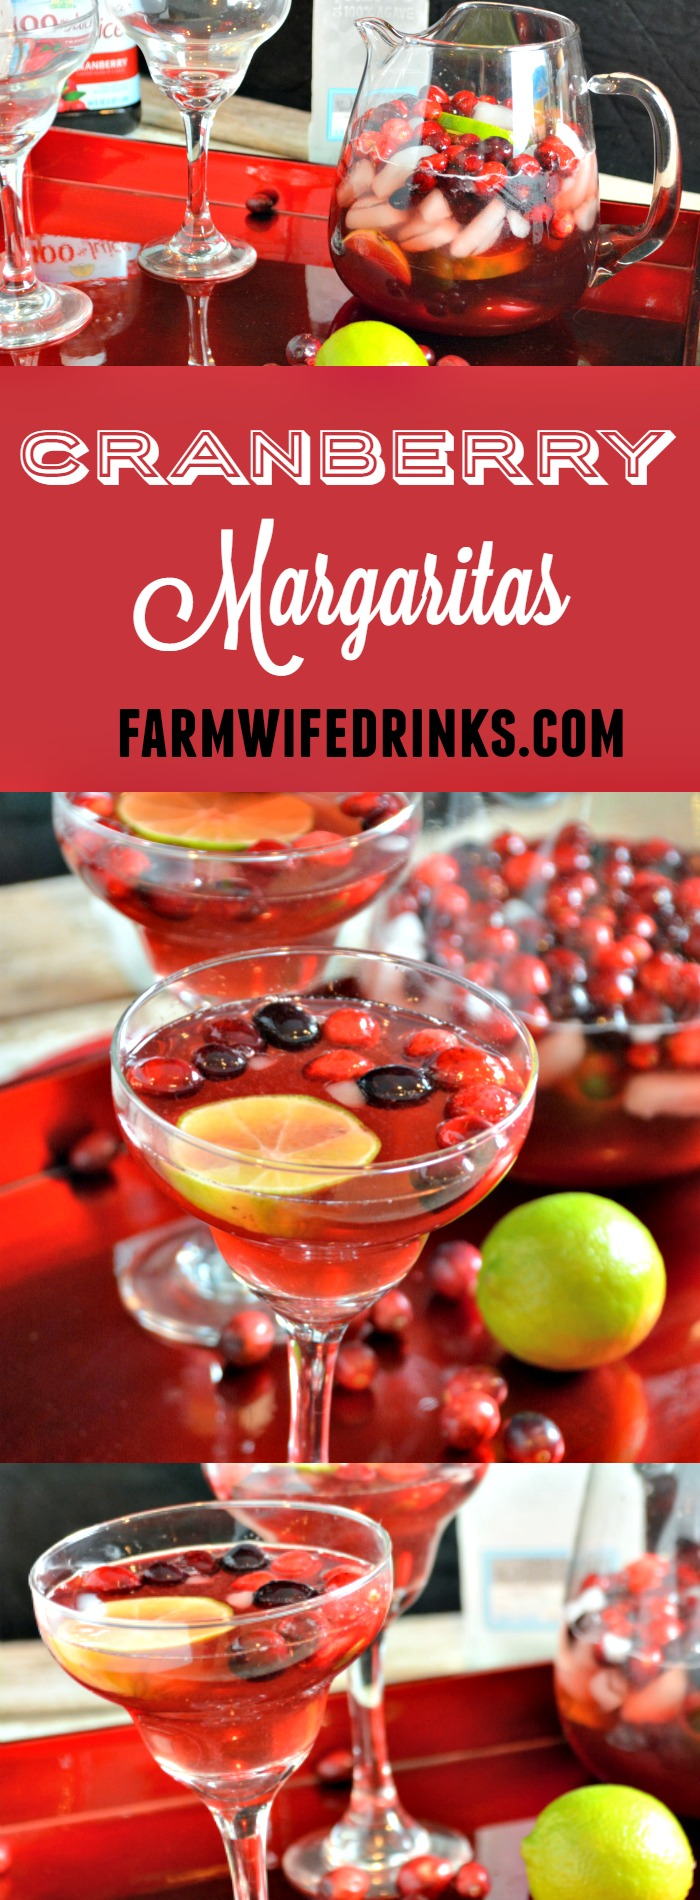 Not your traditional flavor with a pitcher of these cranberry margaritas, but full of tang and tartness in the cranberry that pairs well with silver tequila.